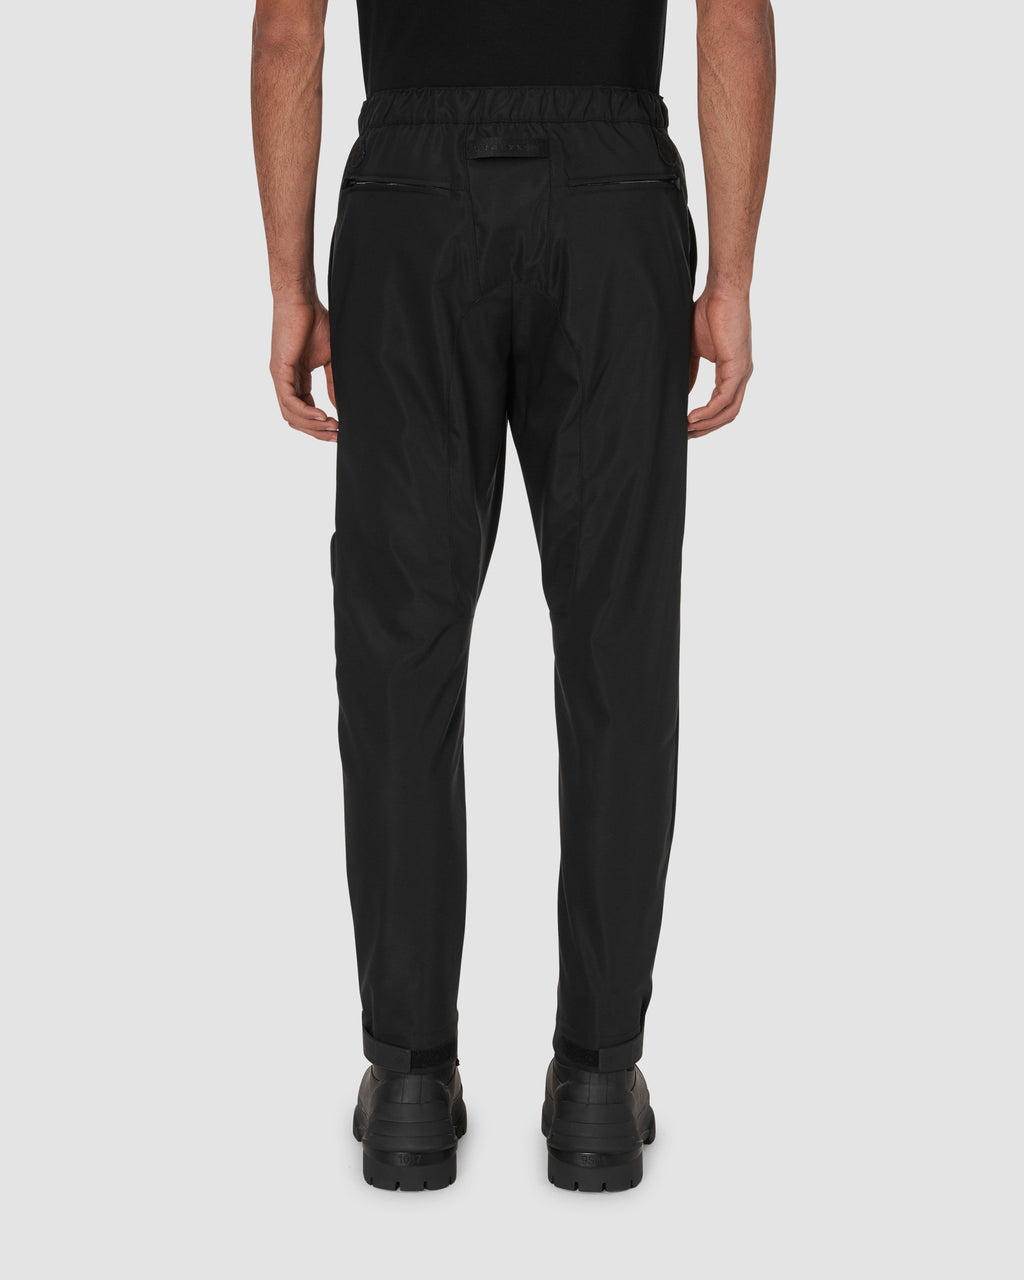 1017 ALYX 9SM | MONCLER SPORTS TROUSERS | PANTS | BLACK, Google Shopping, MEN, Moncler, PANTS, S20